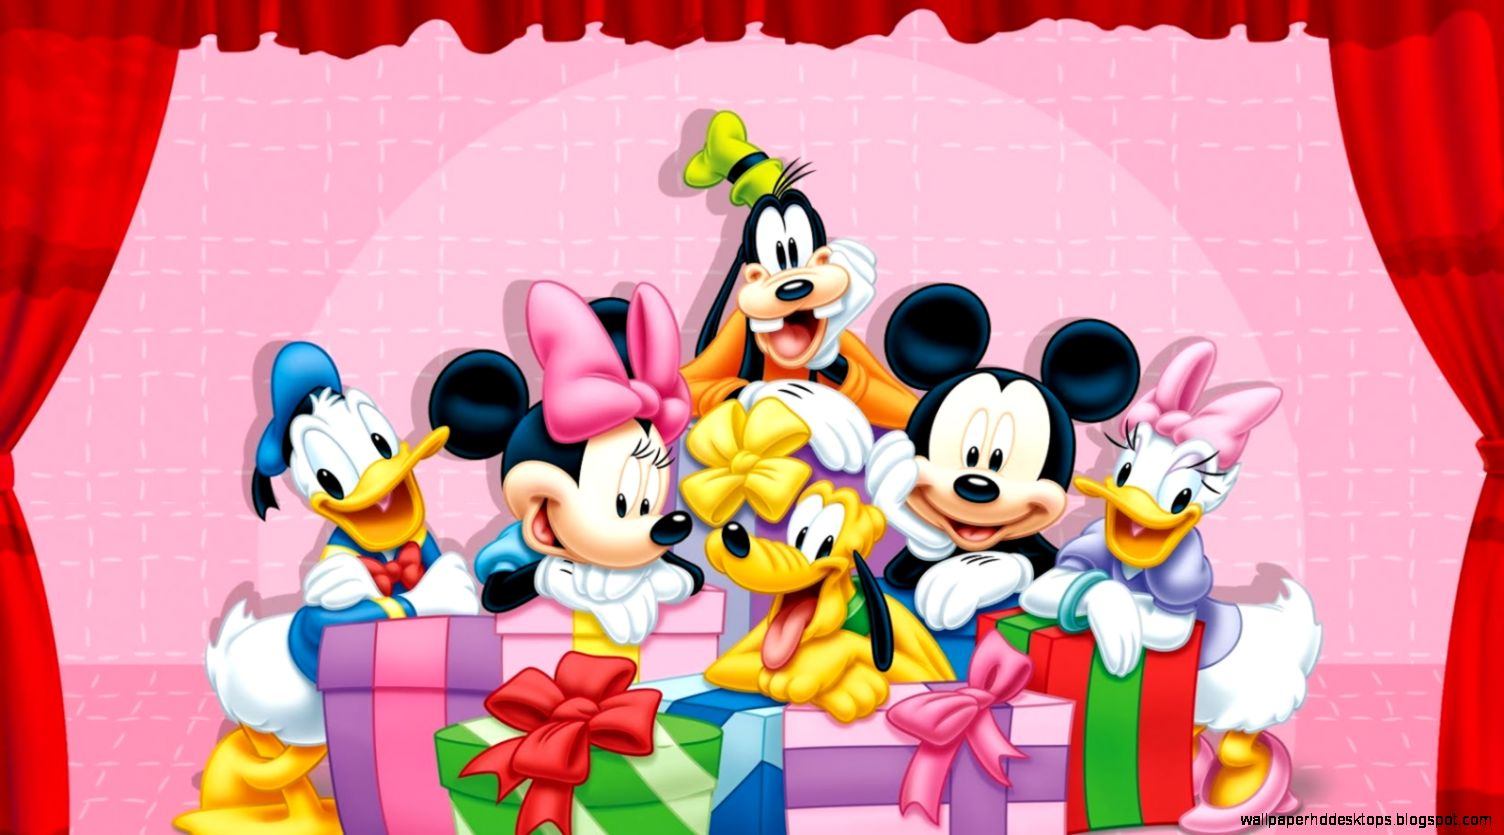 Birthday Party Mickey Minnie Mouse Hd Wallpaper Minnie Mouse Y Amigos 1504x835 Download Hd Wallpaper Wallpapertip